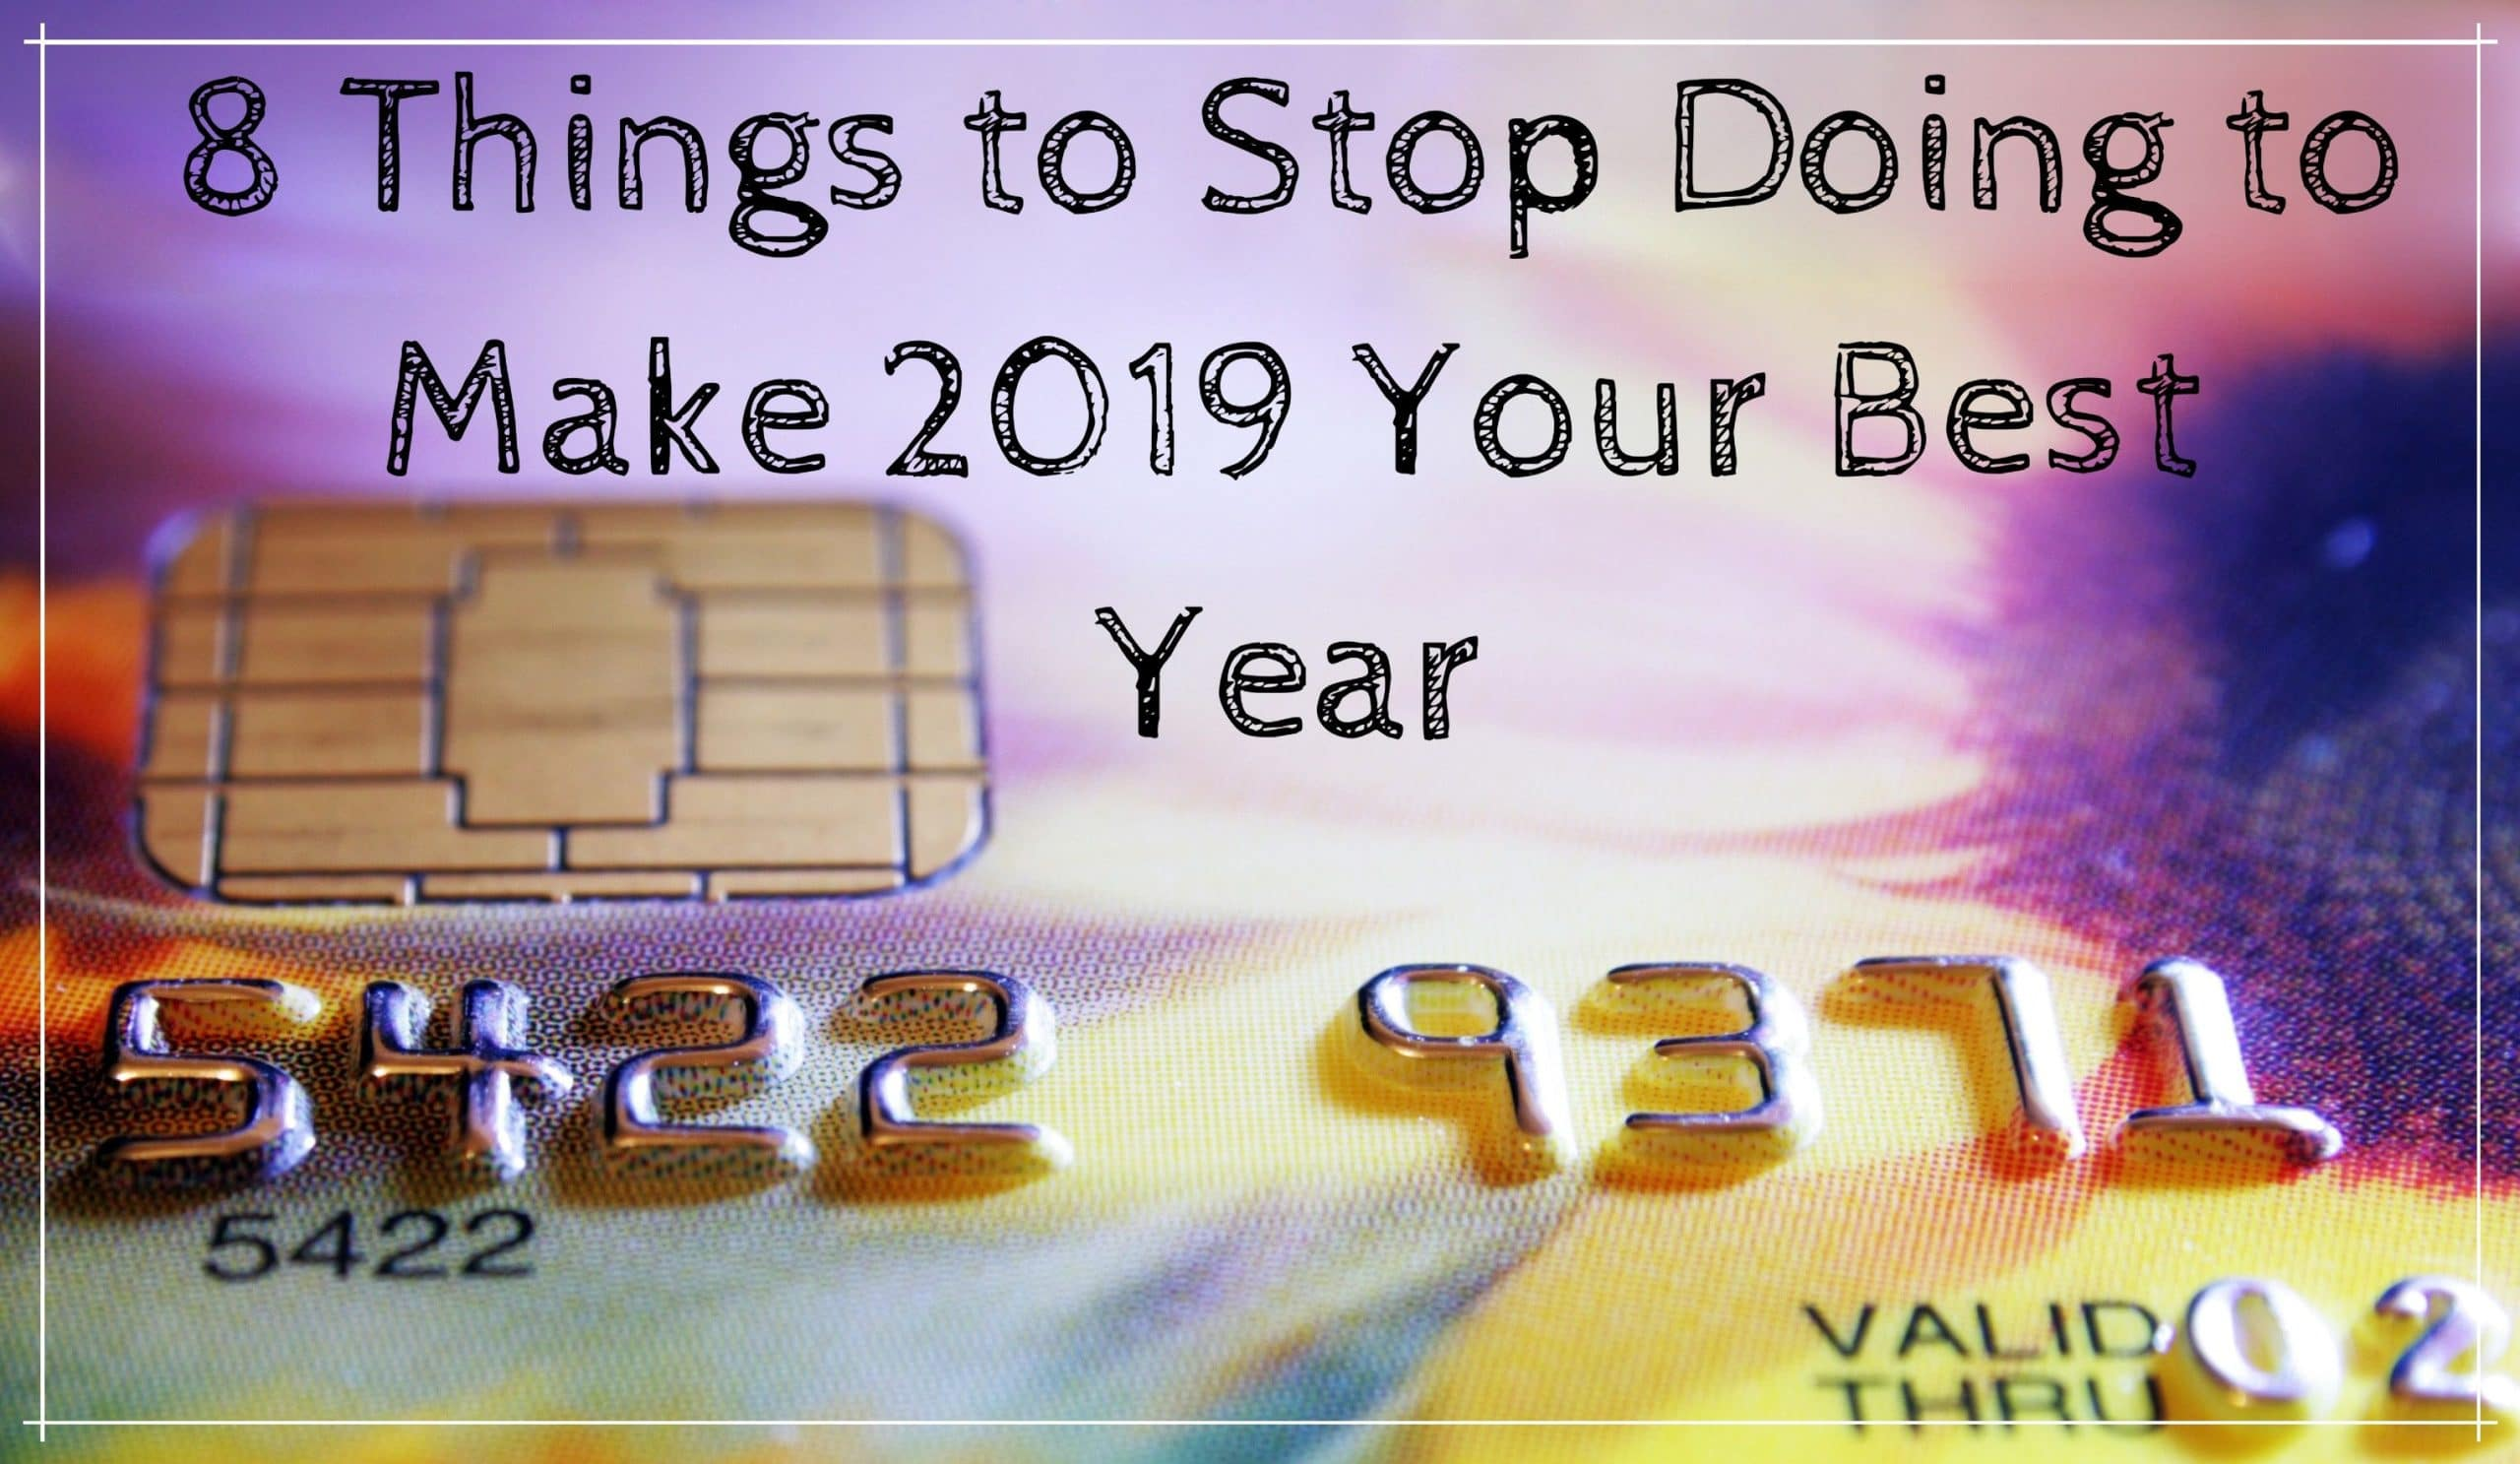 8 Things To Stop Doing To Make 2019 Your Best Year